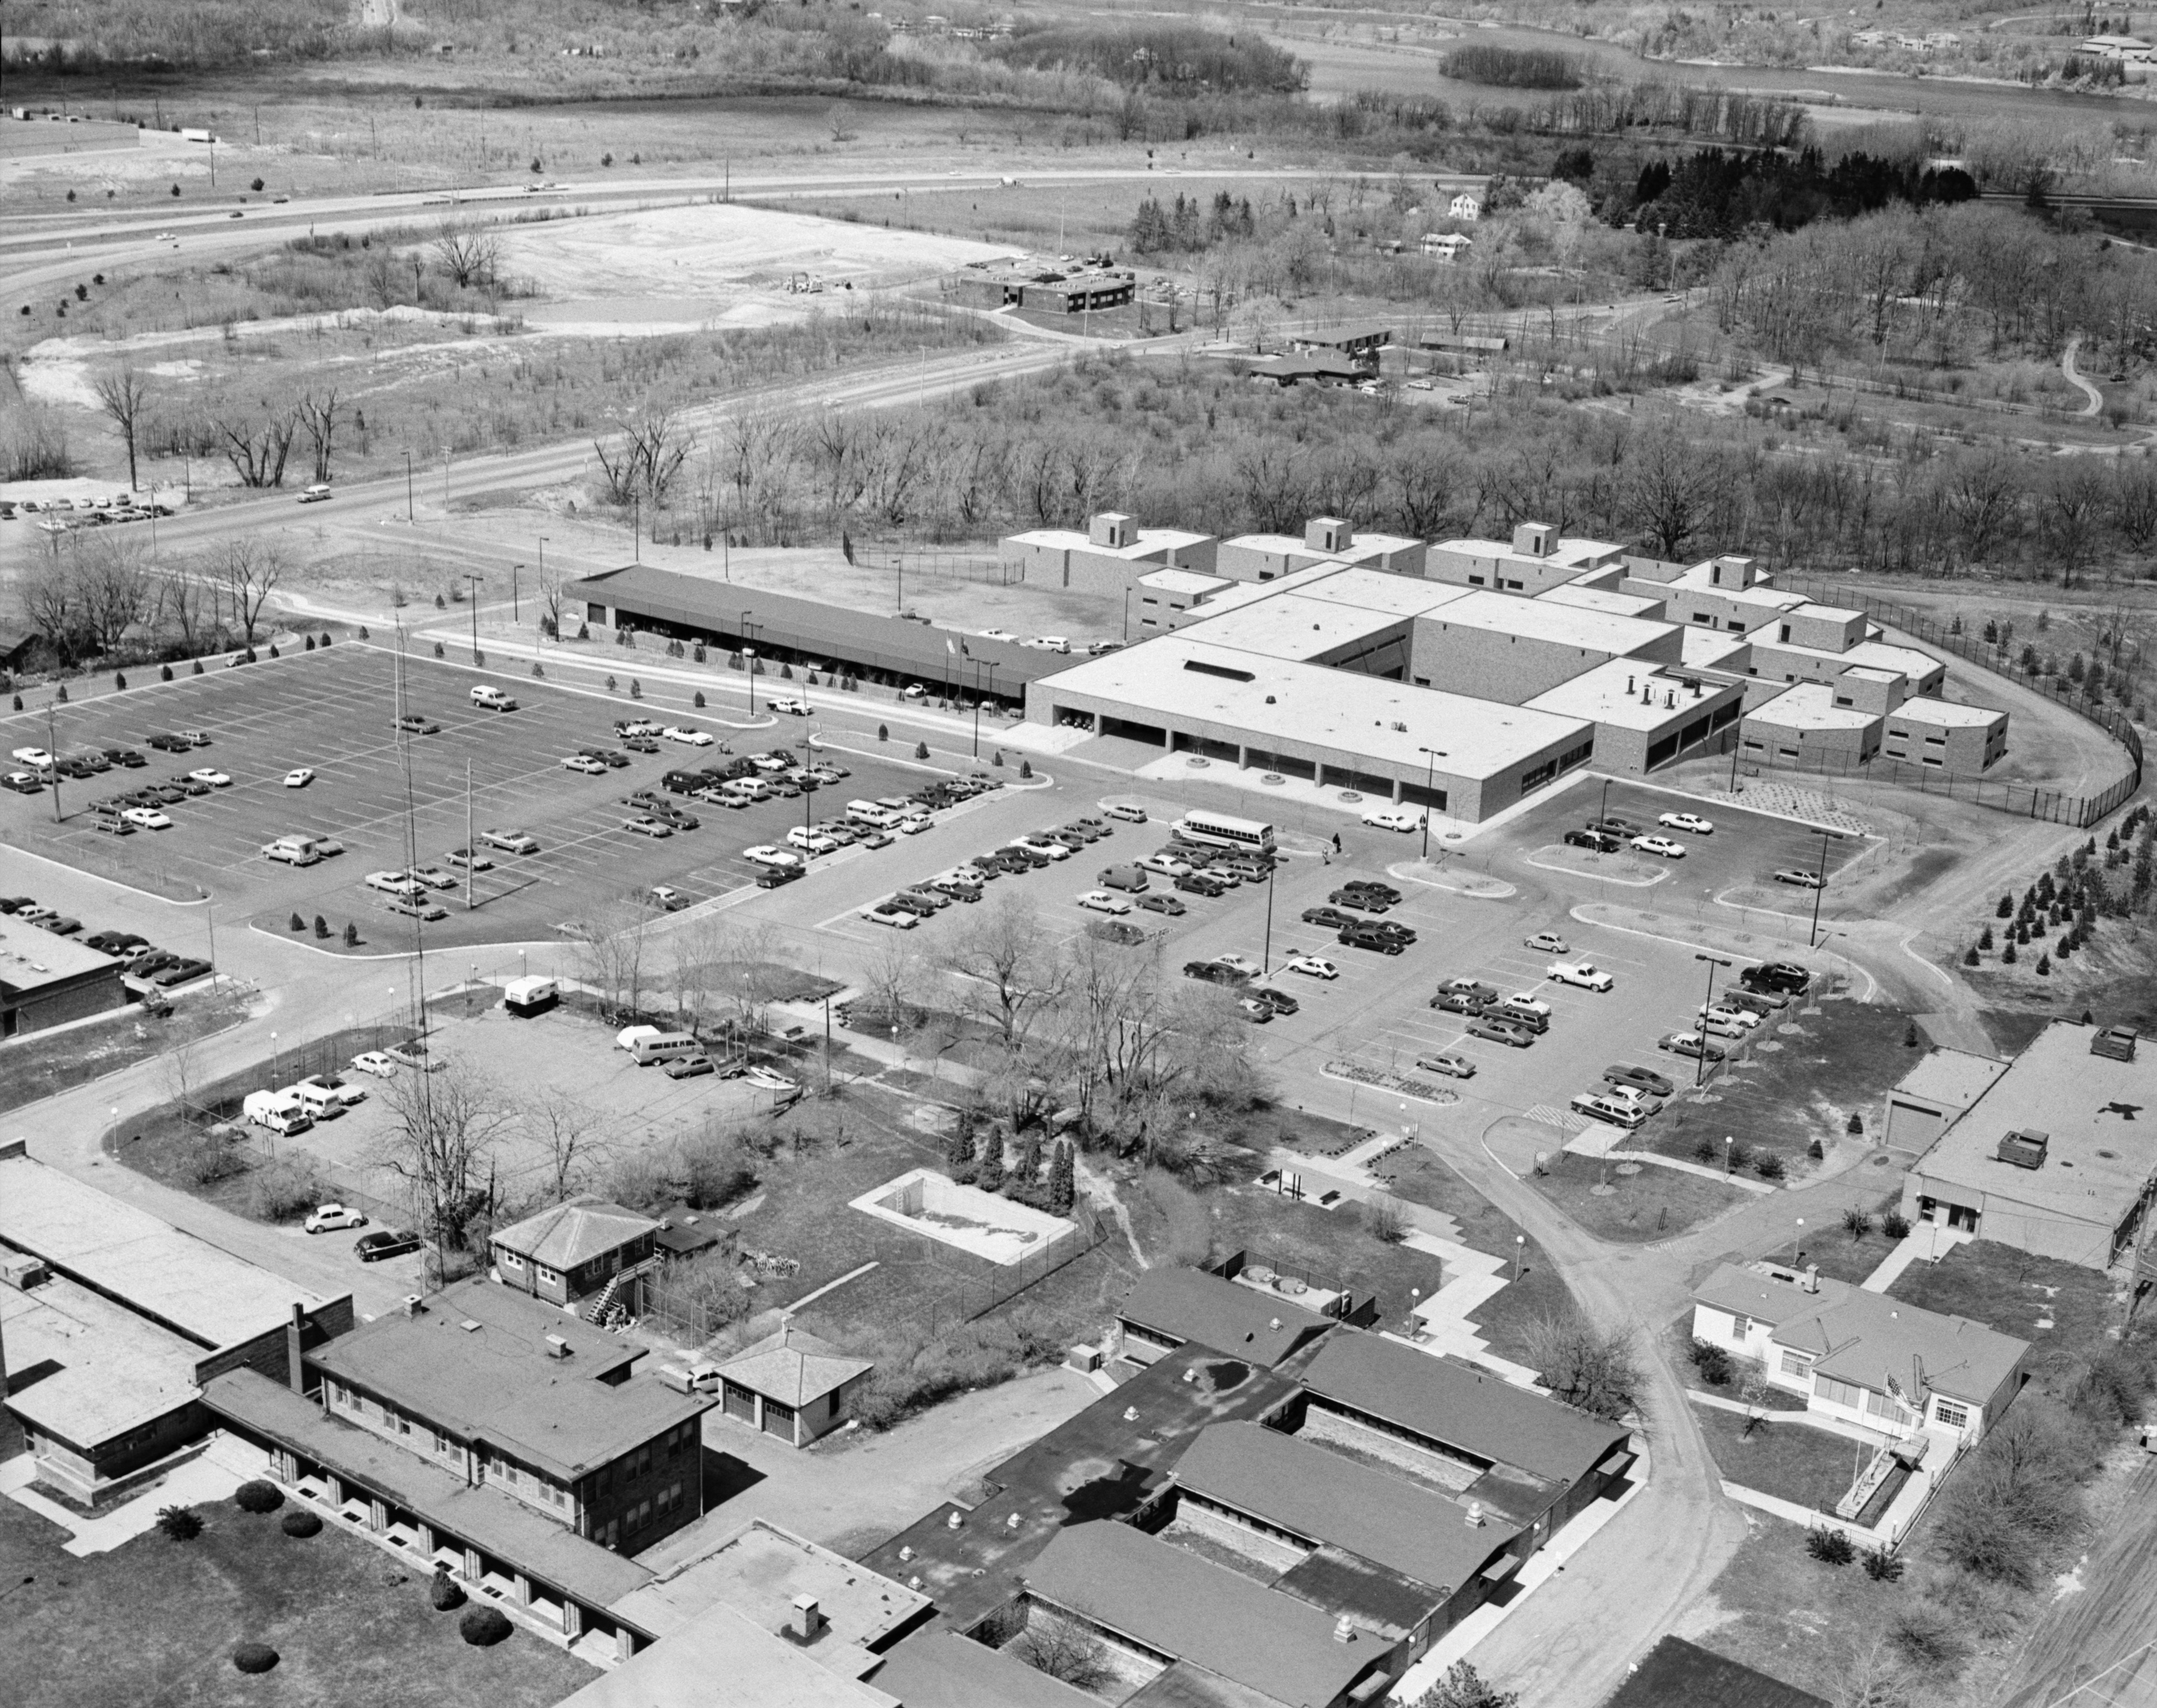 Aerial Photograph of Washtenaw County Jail, April 1978 image